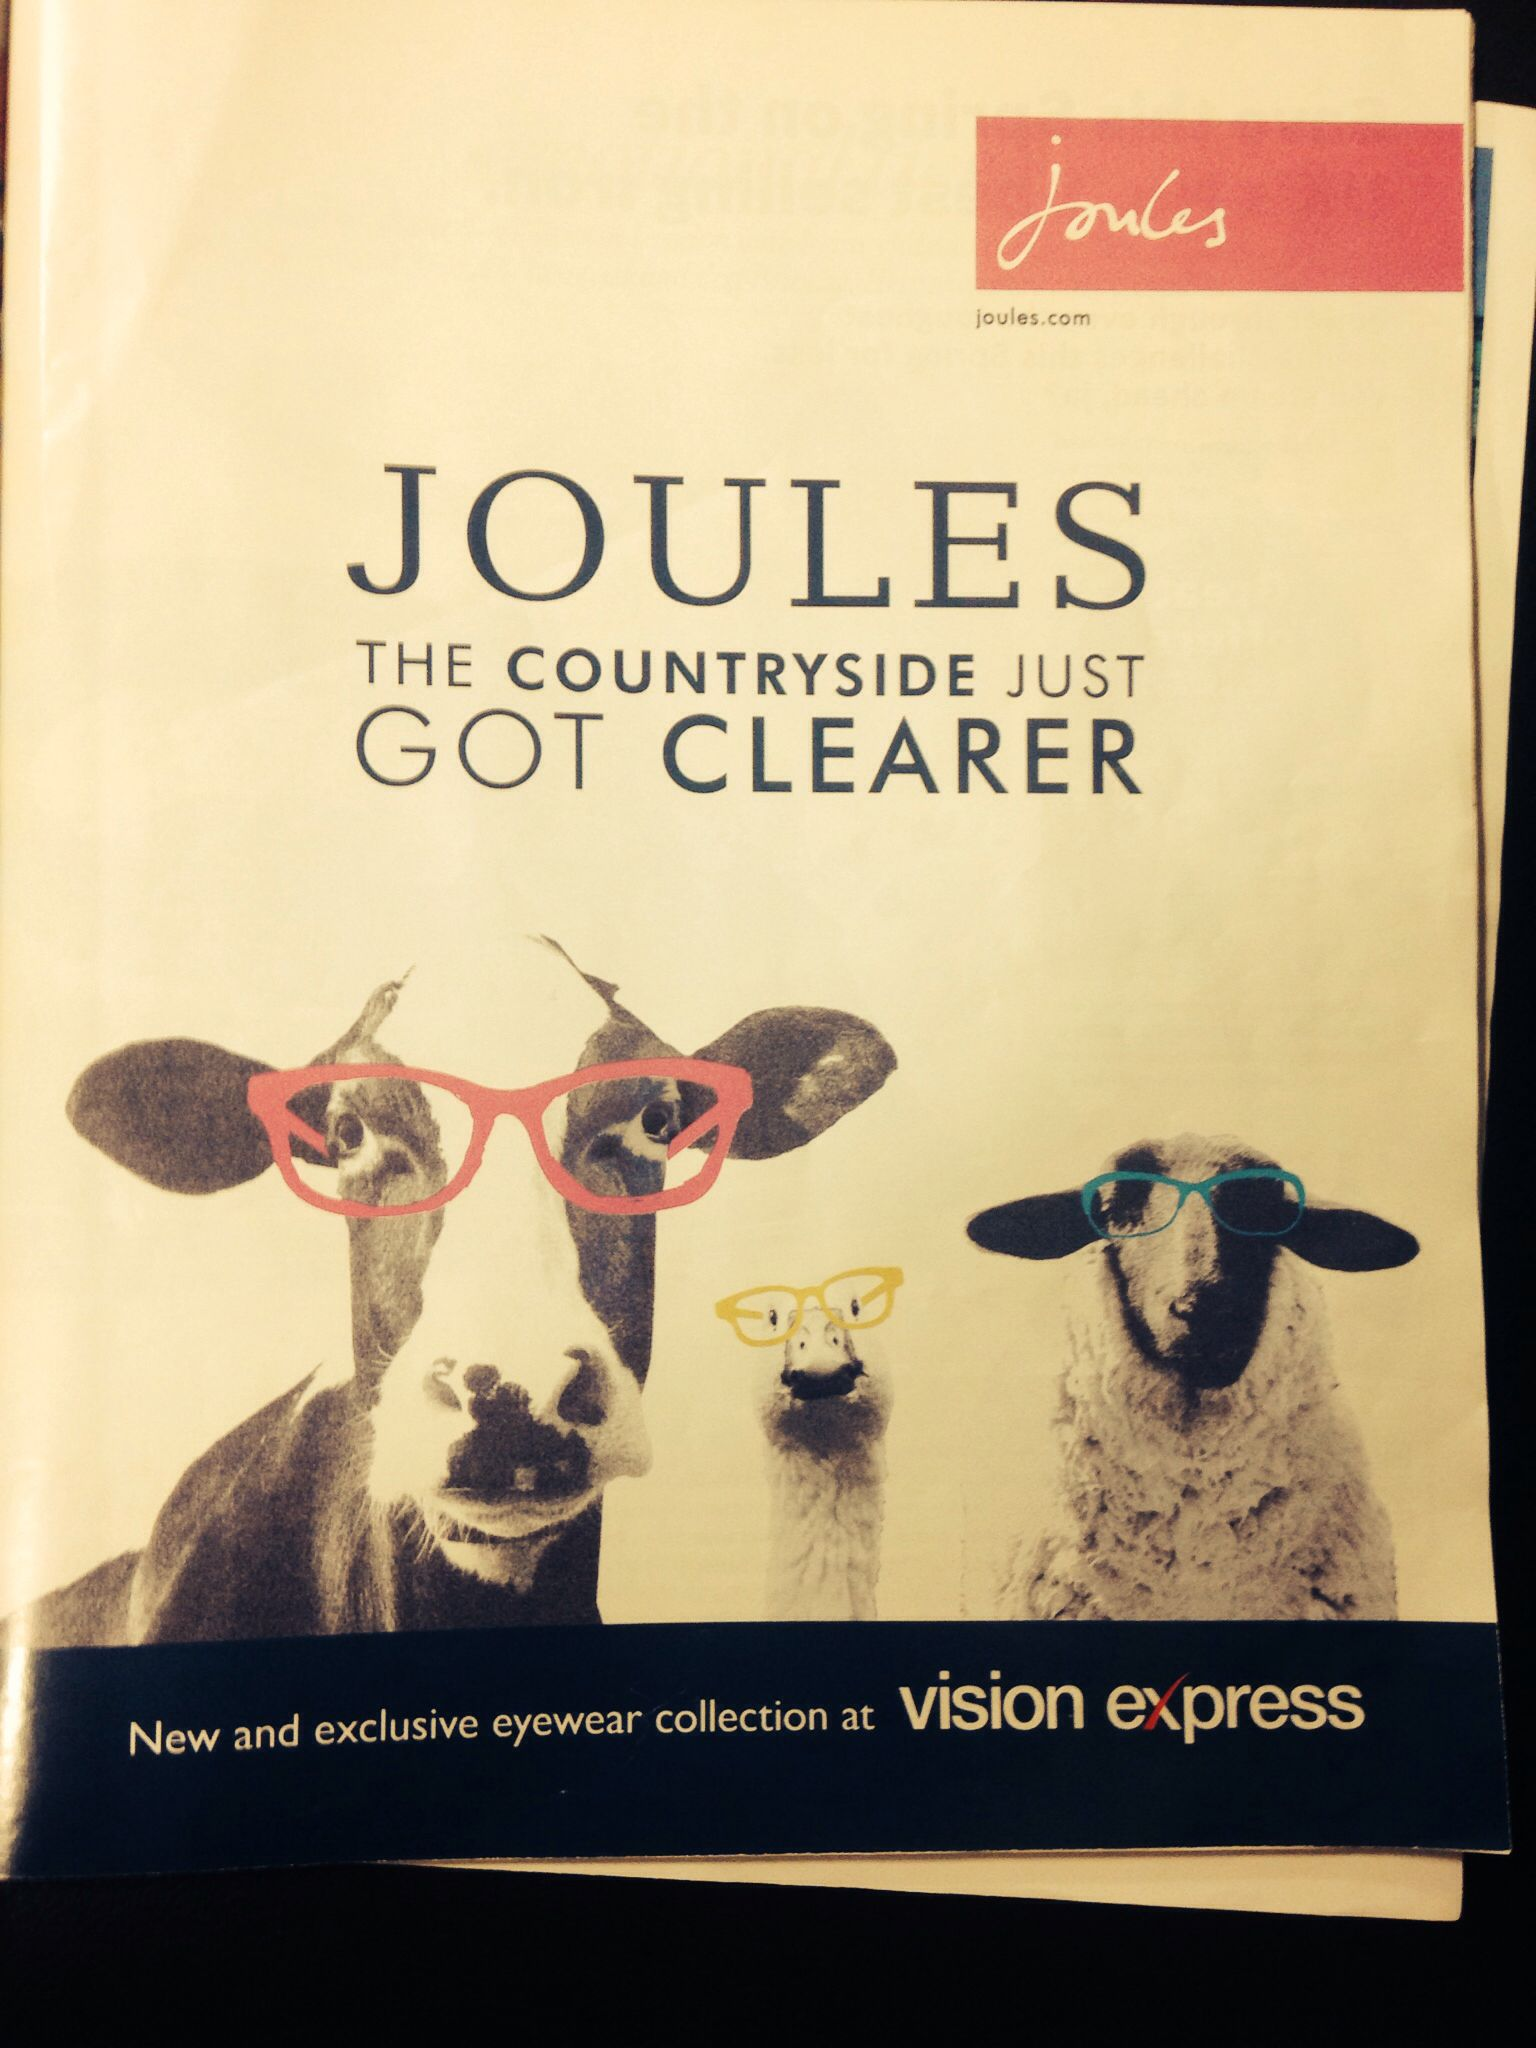 joules advert specsavers advertising